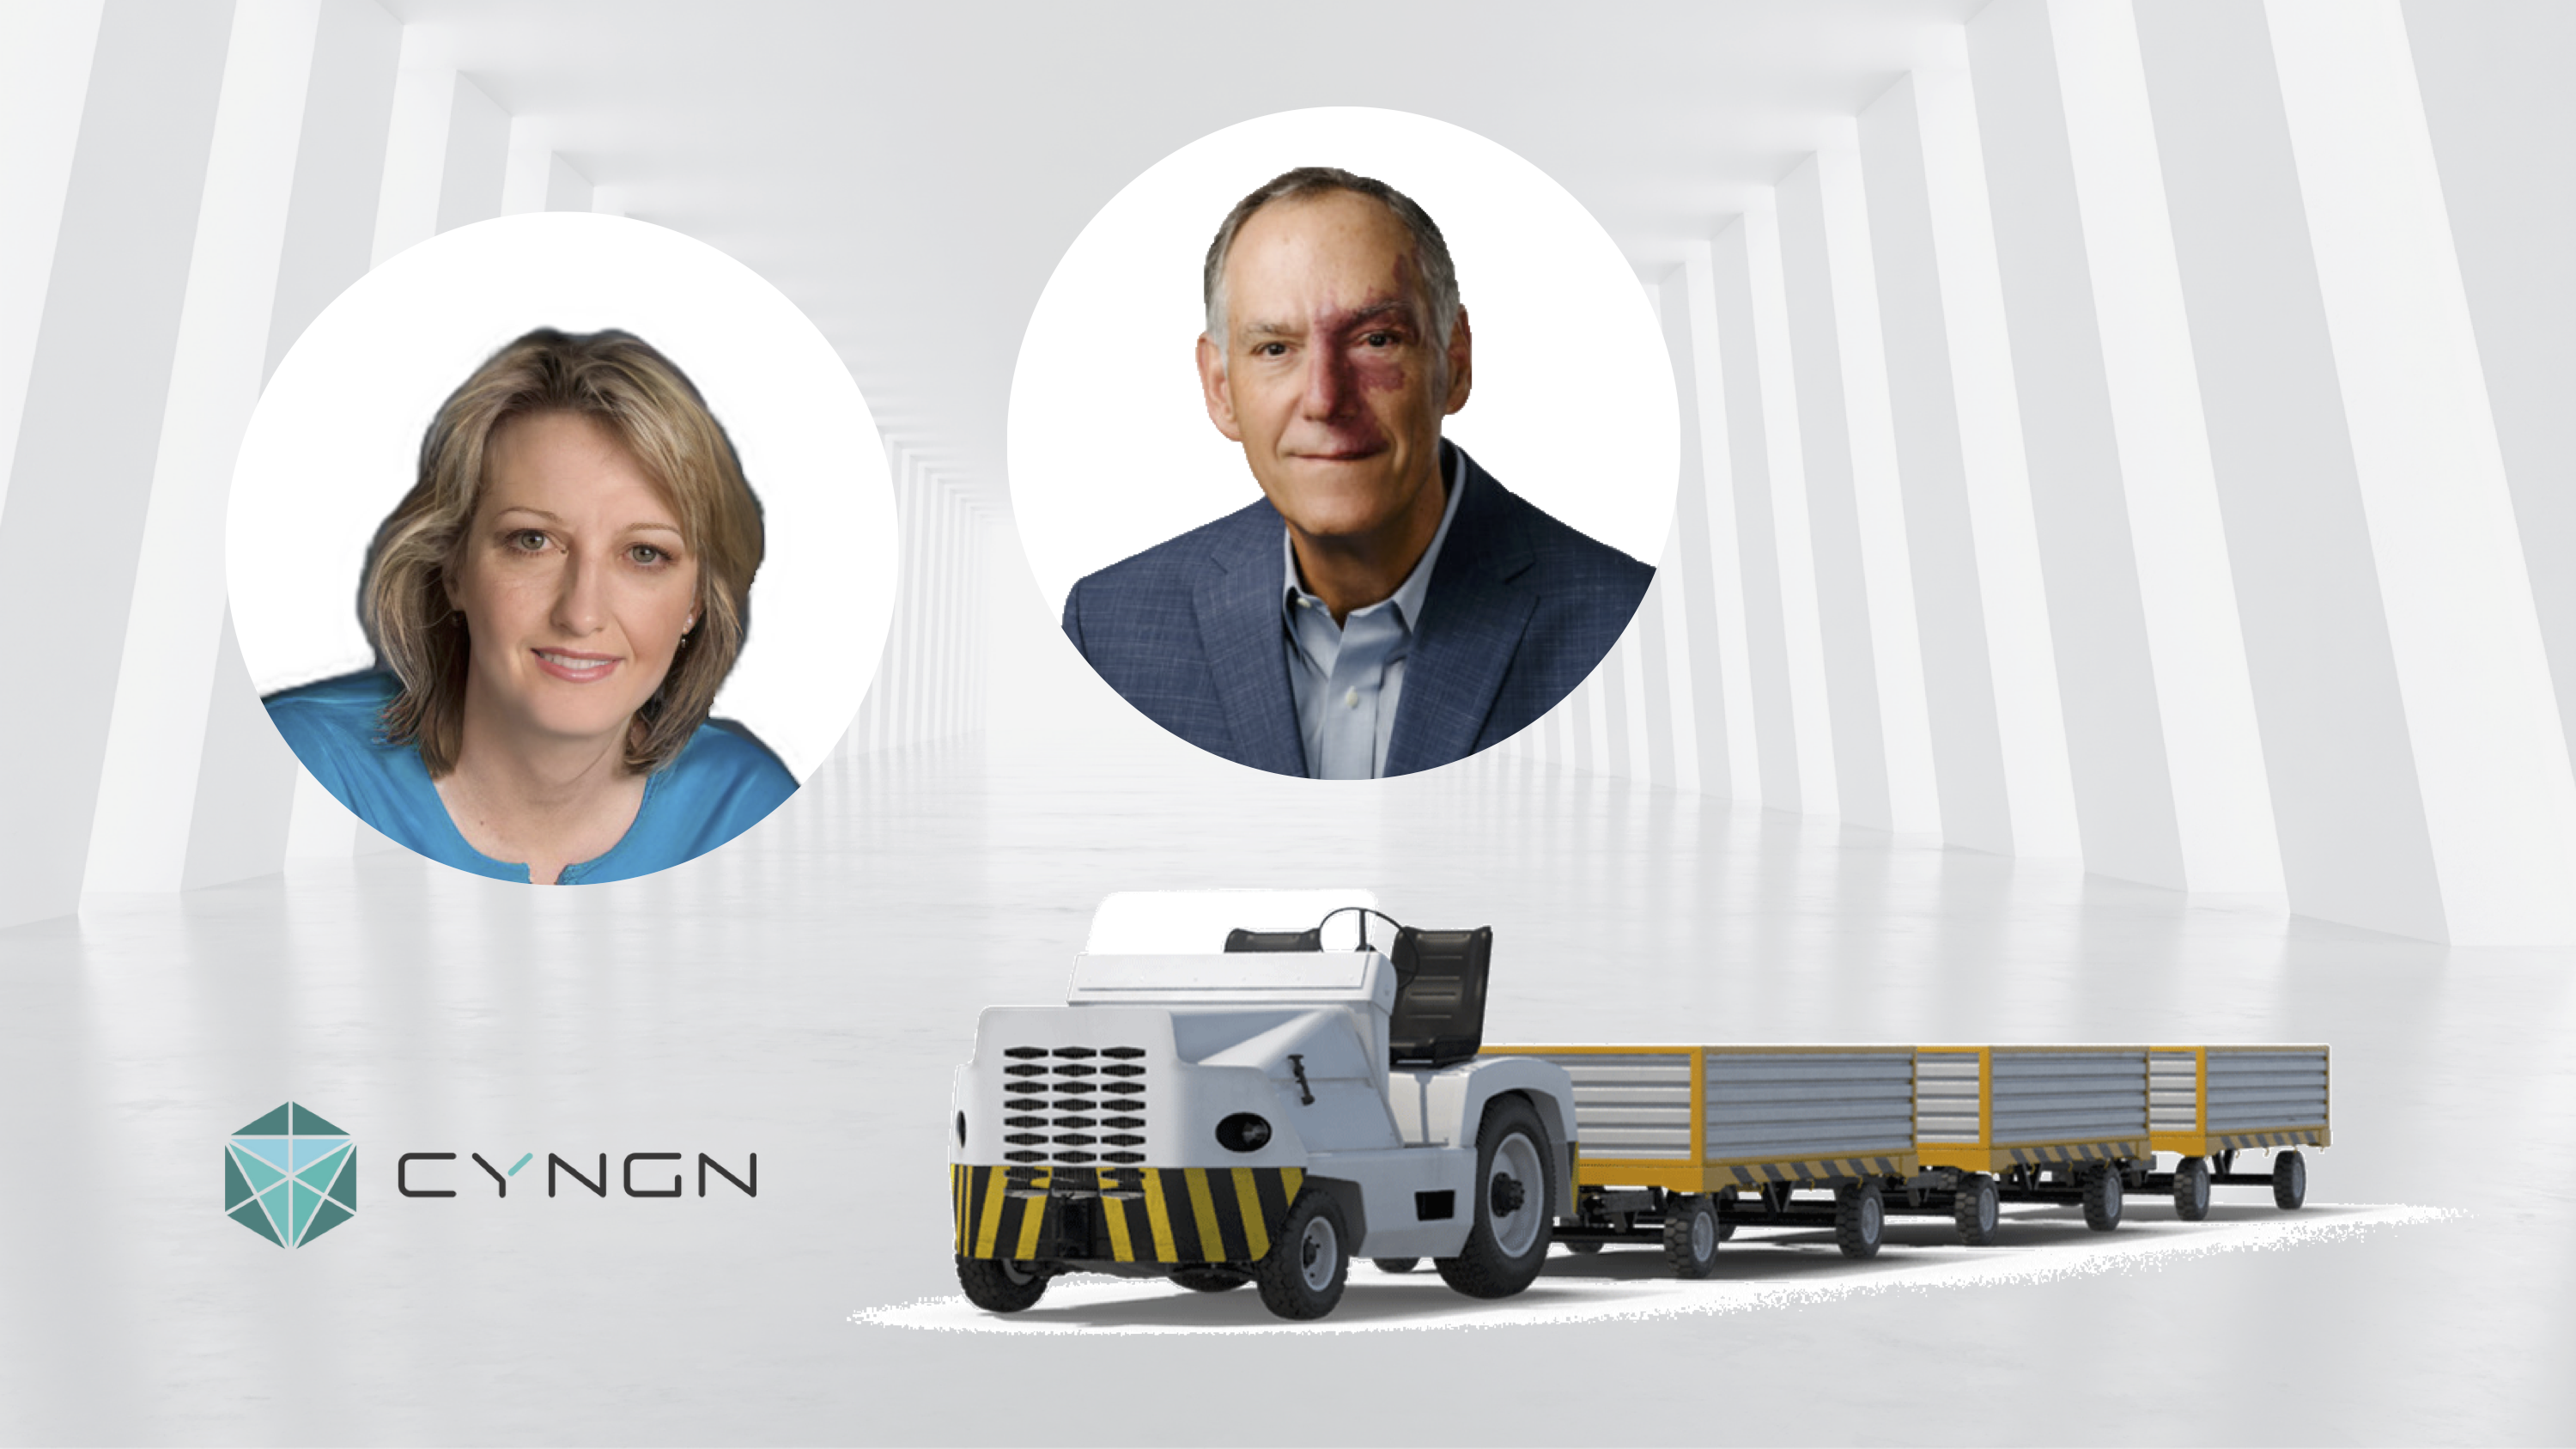 Cyngn Announces Appointments of Two New Independent Directors